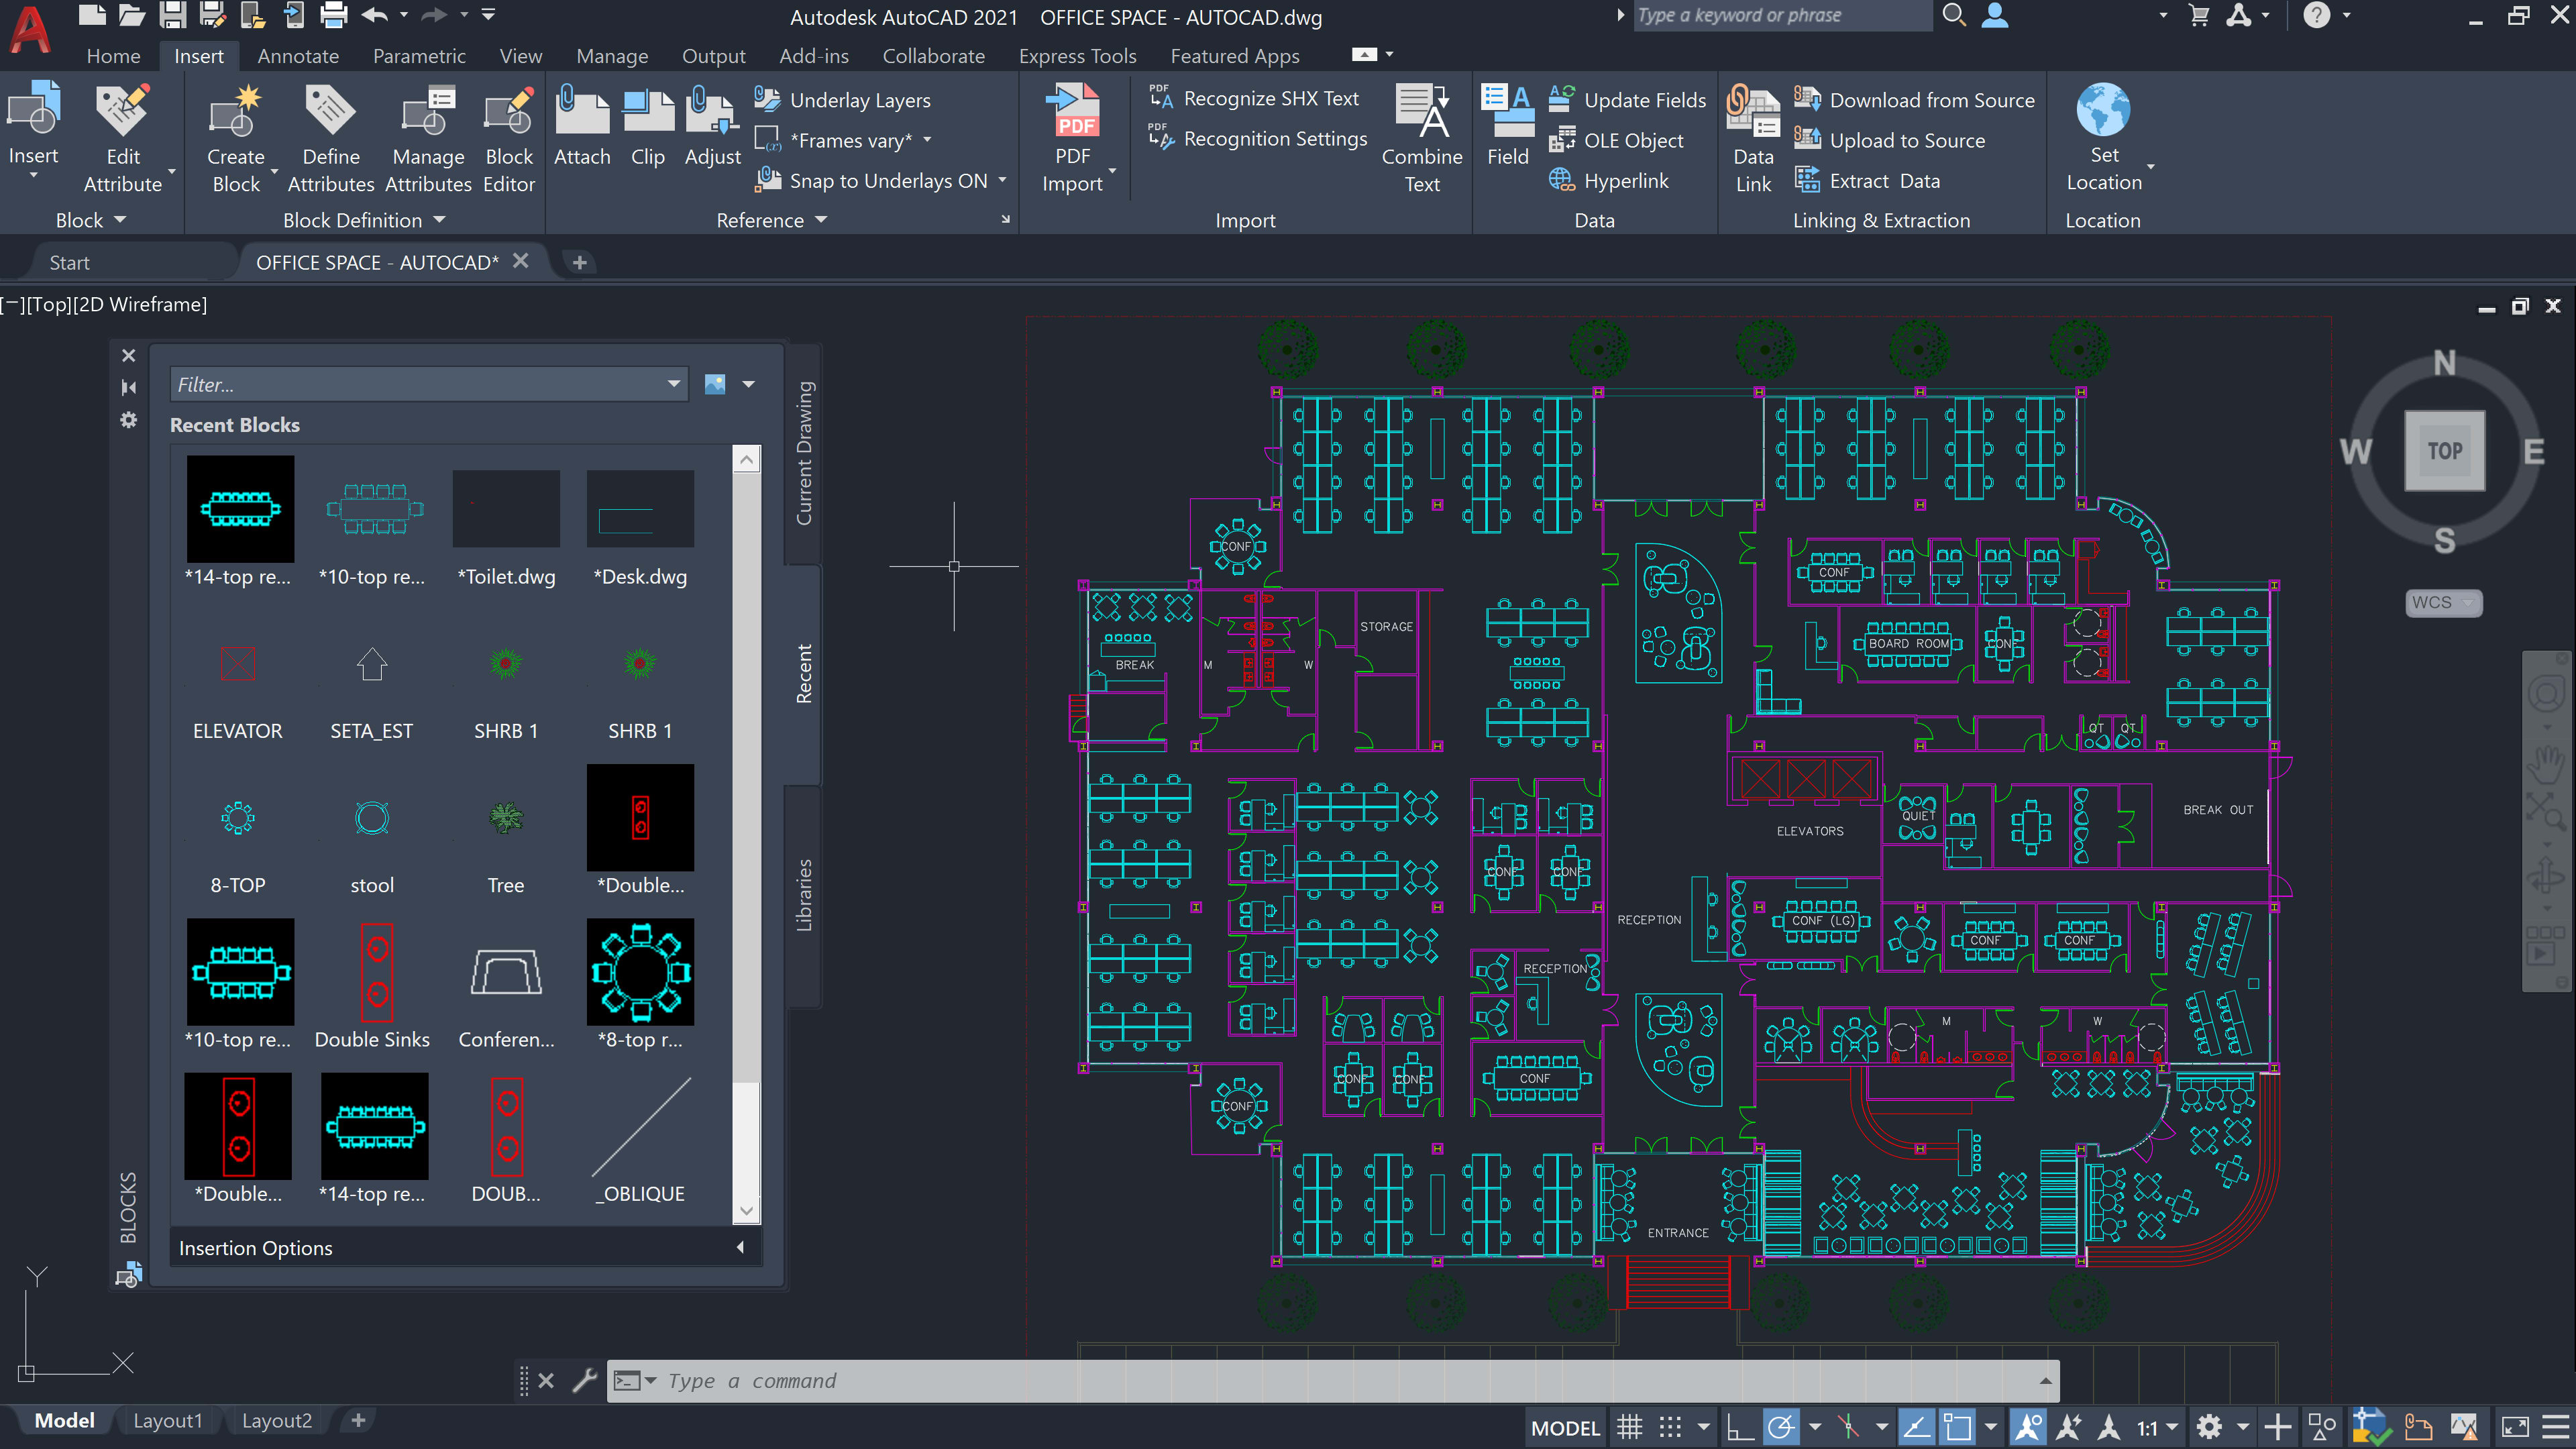 AutoCAD 2021 Blocks Palette